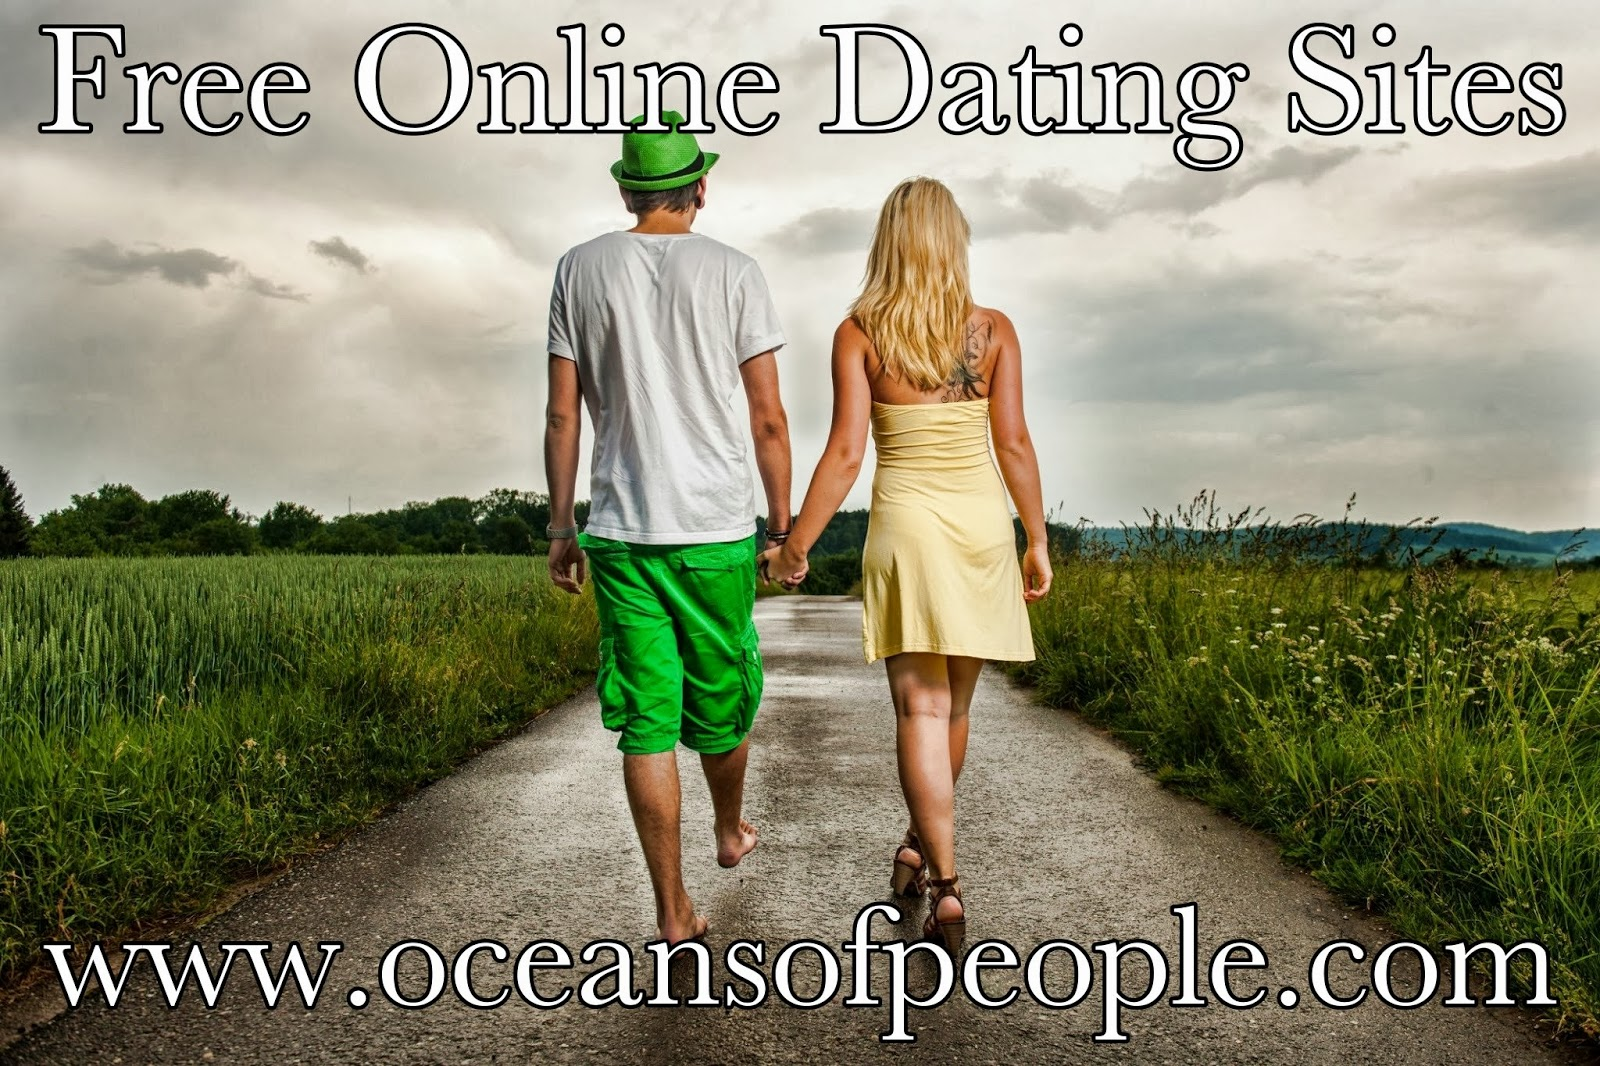 Egoistische online-dating-sites